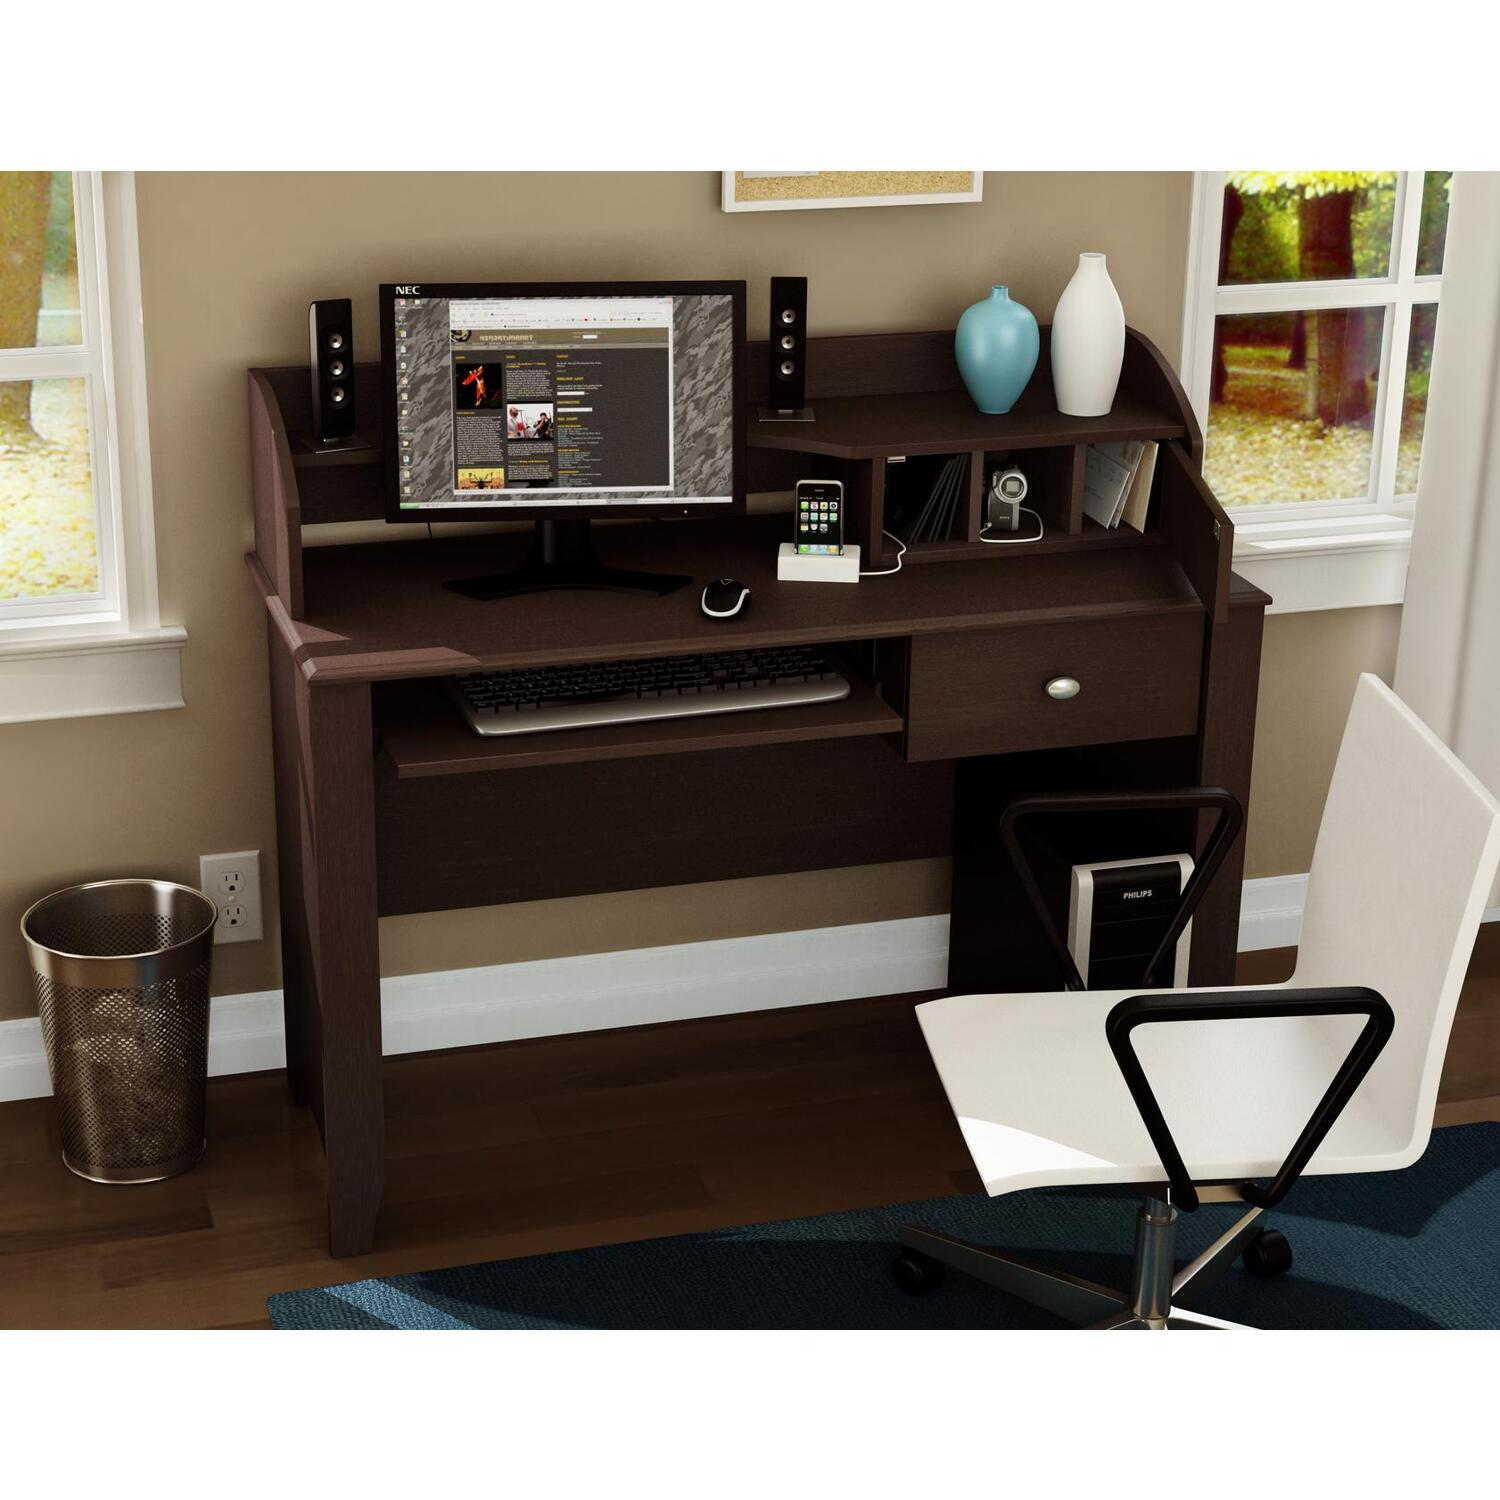 South Shore Secretary Desk by OJ Commerce 7259795 - $285.04